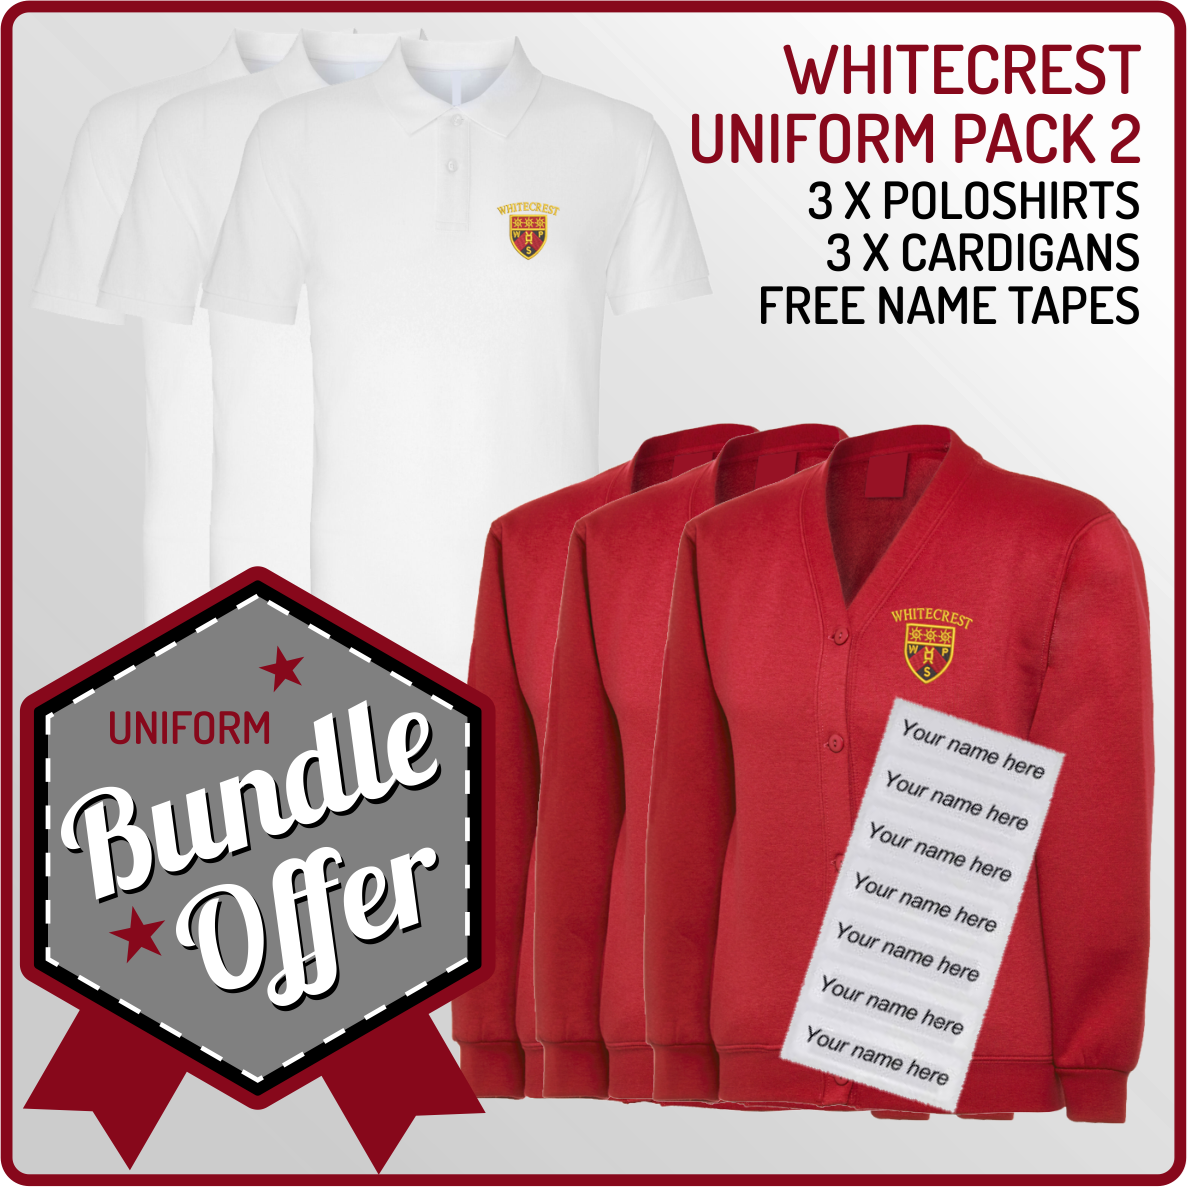 Bundle offer of 3 Cardigans  & 3 Poloshirts - includes FREE name tapes!